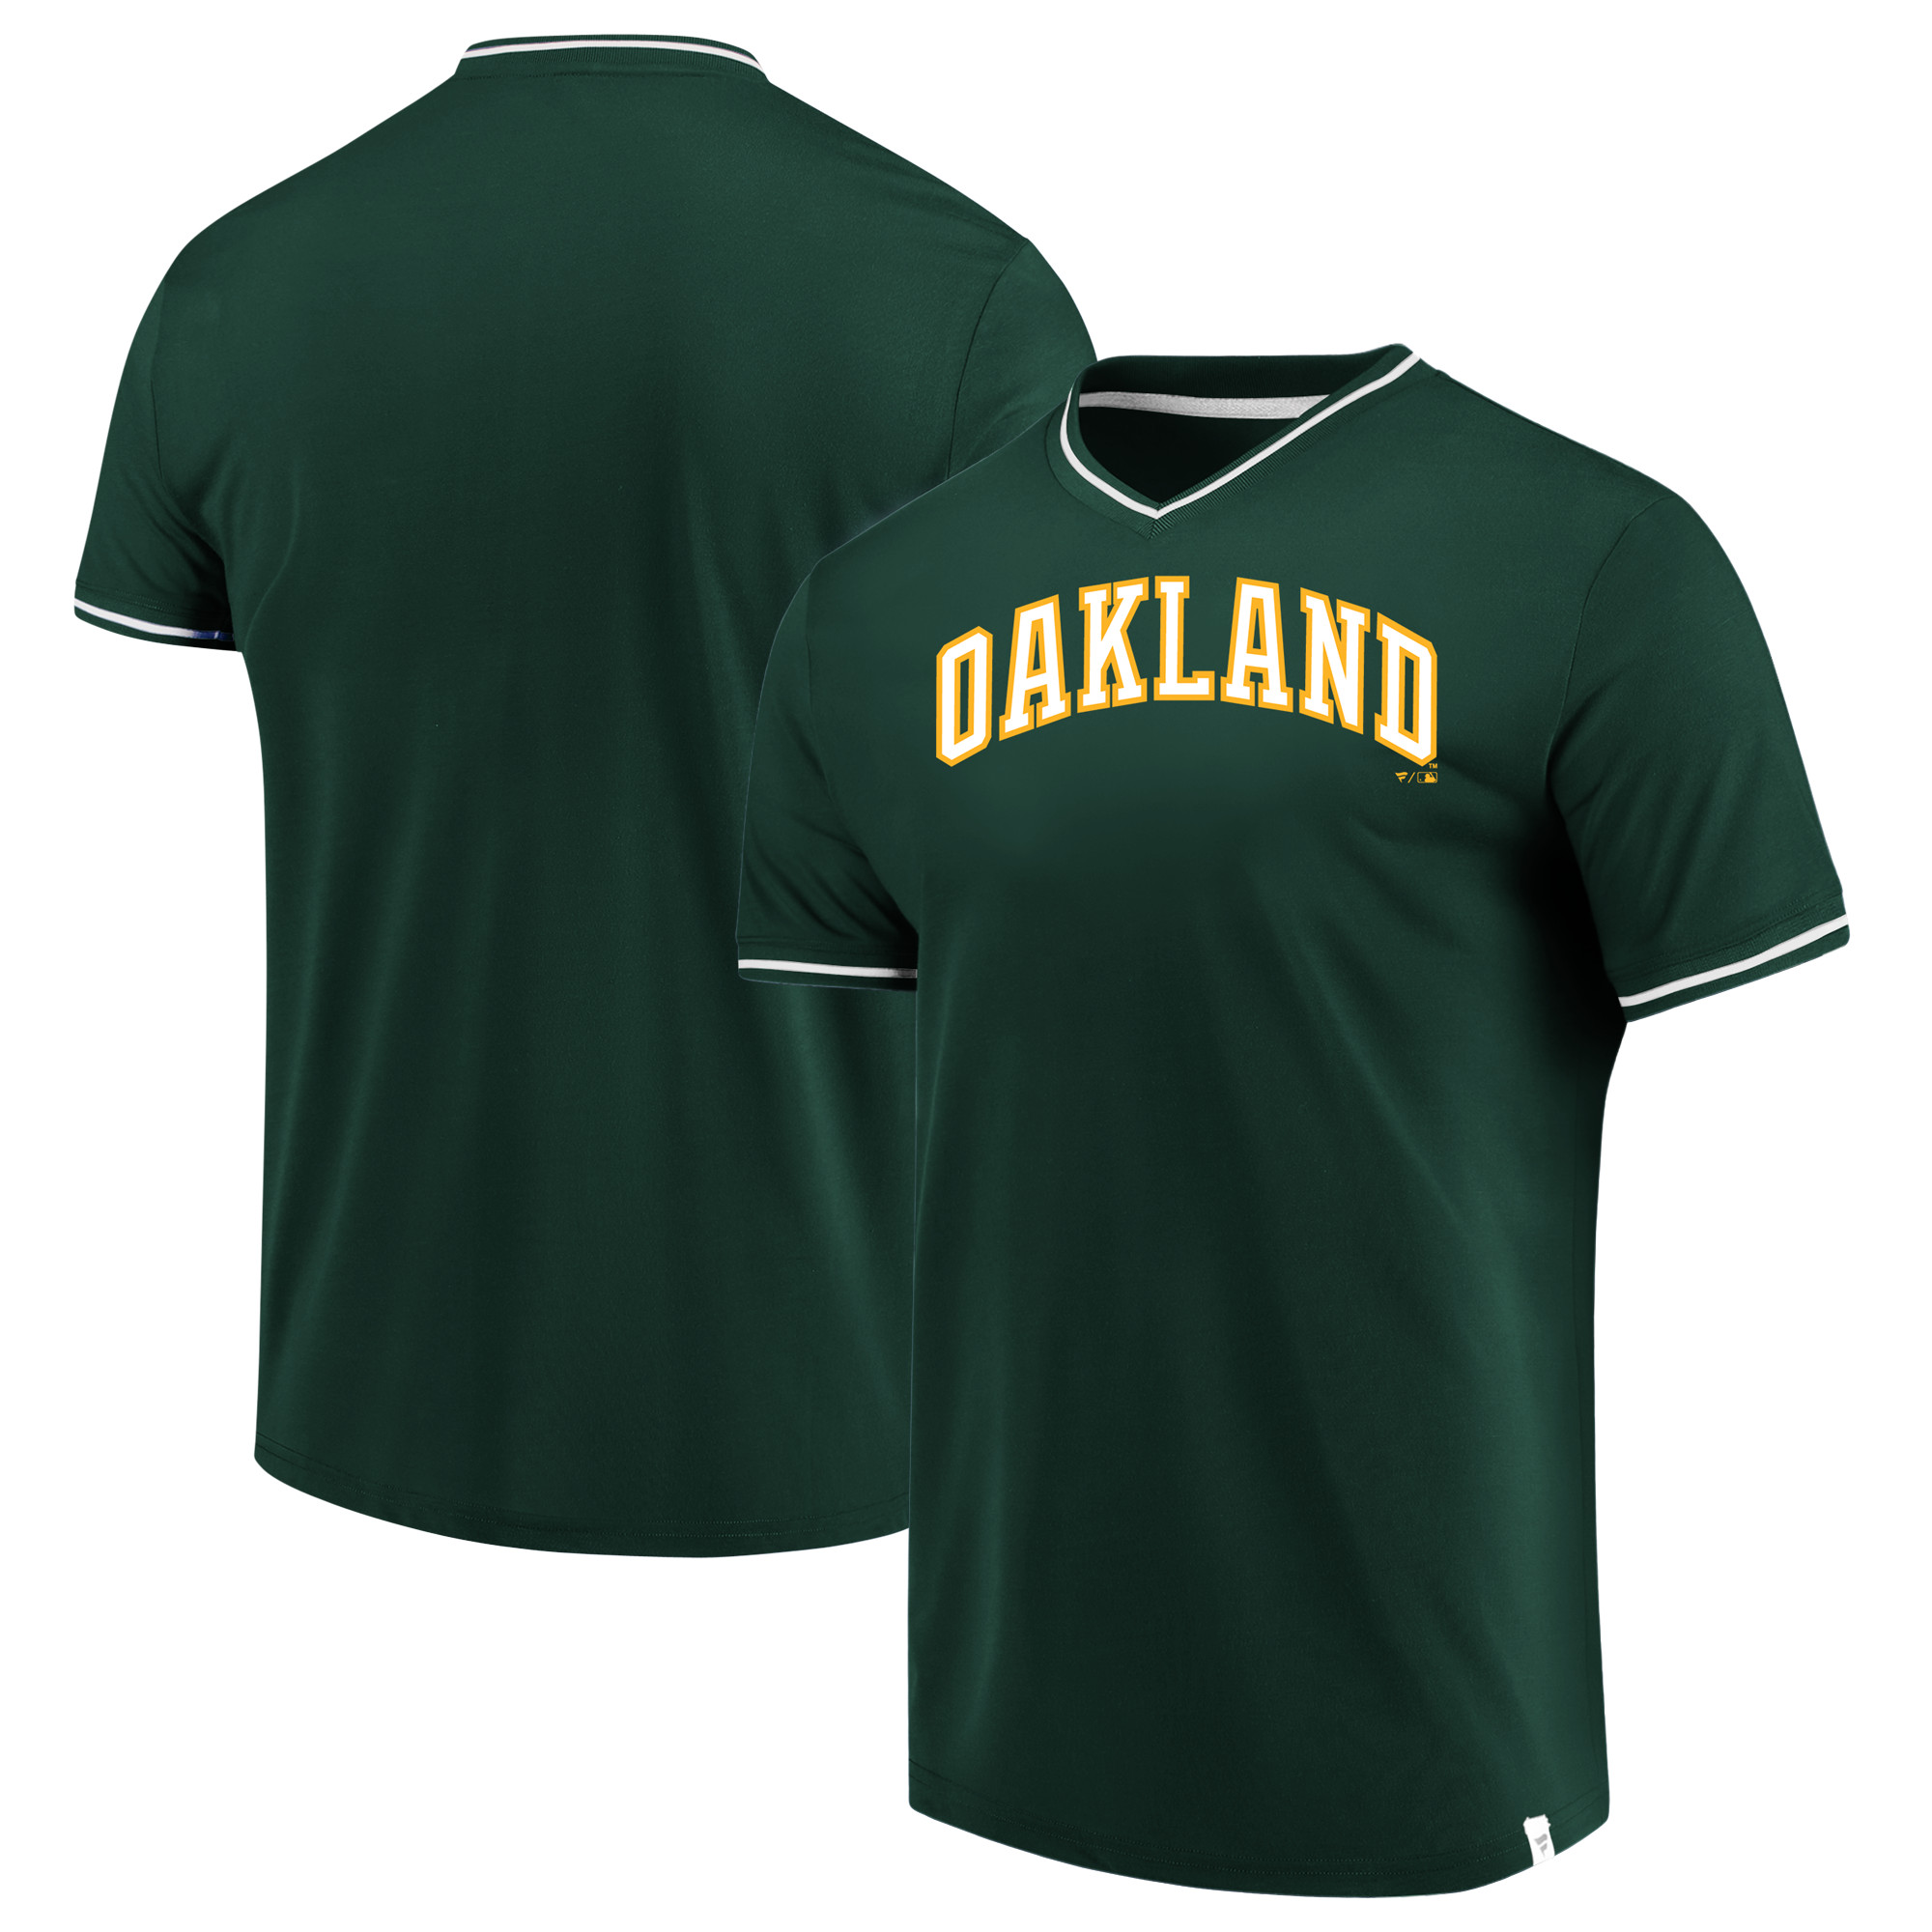 Oakland Athletics Fanatics Branded True Classics V-Neck T-Shirt - Green/White